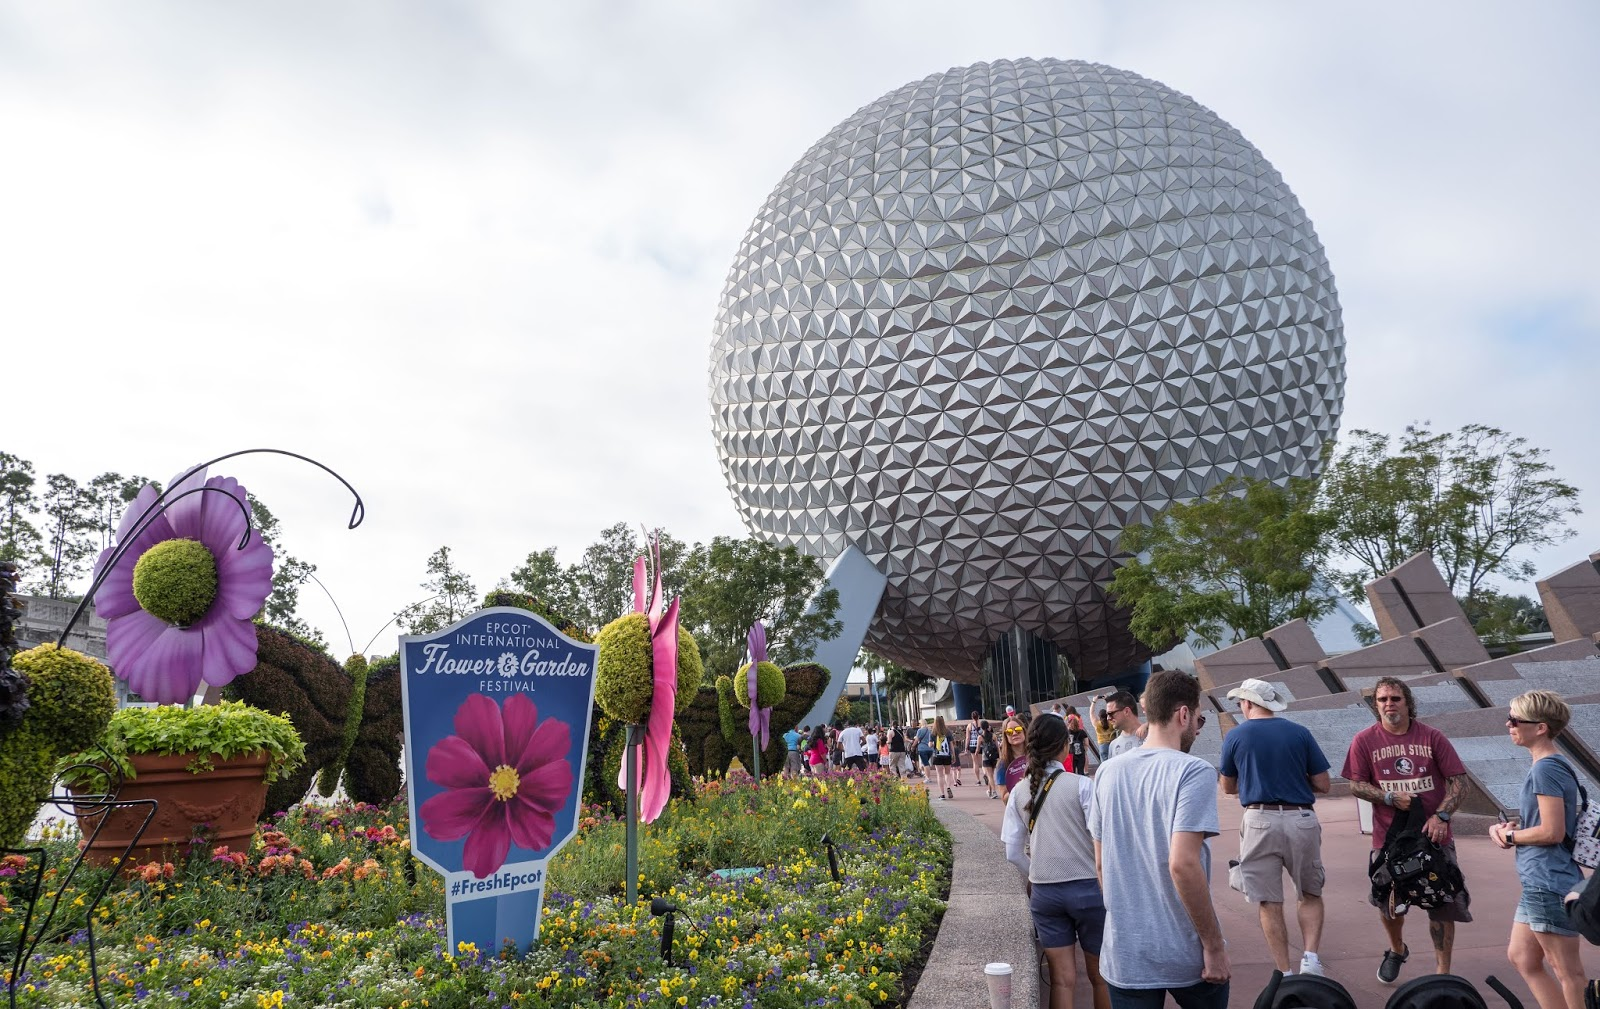 The entrance to Epcot during the 2019 Flower and Garden Festival, Walt Disney World